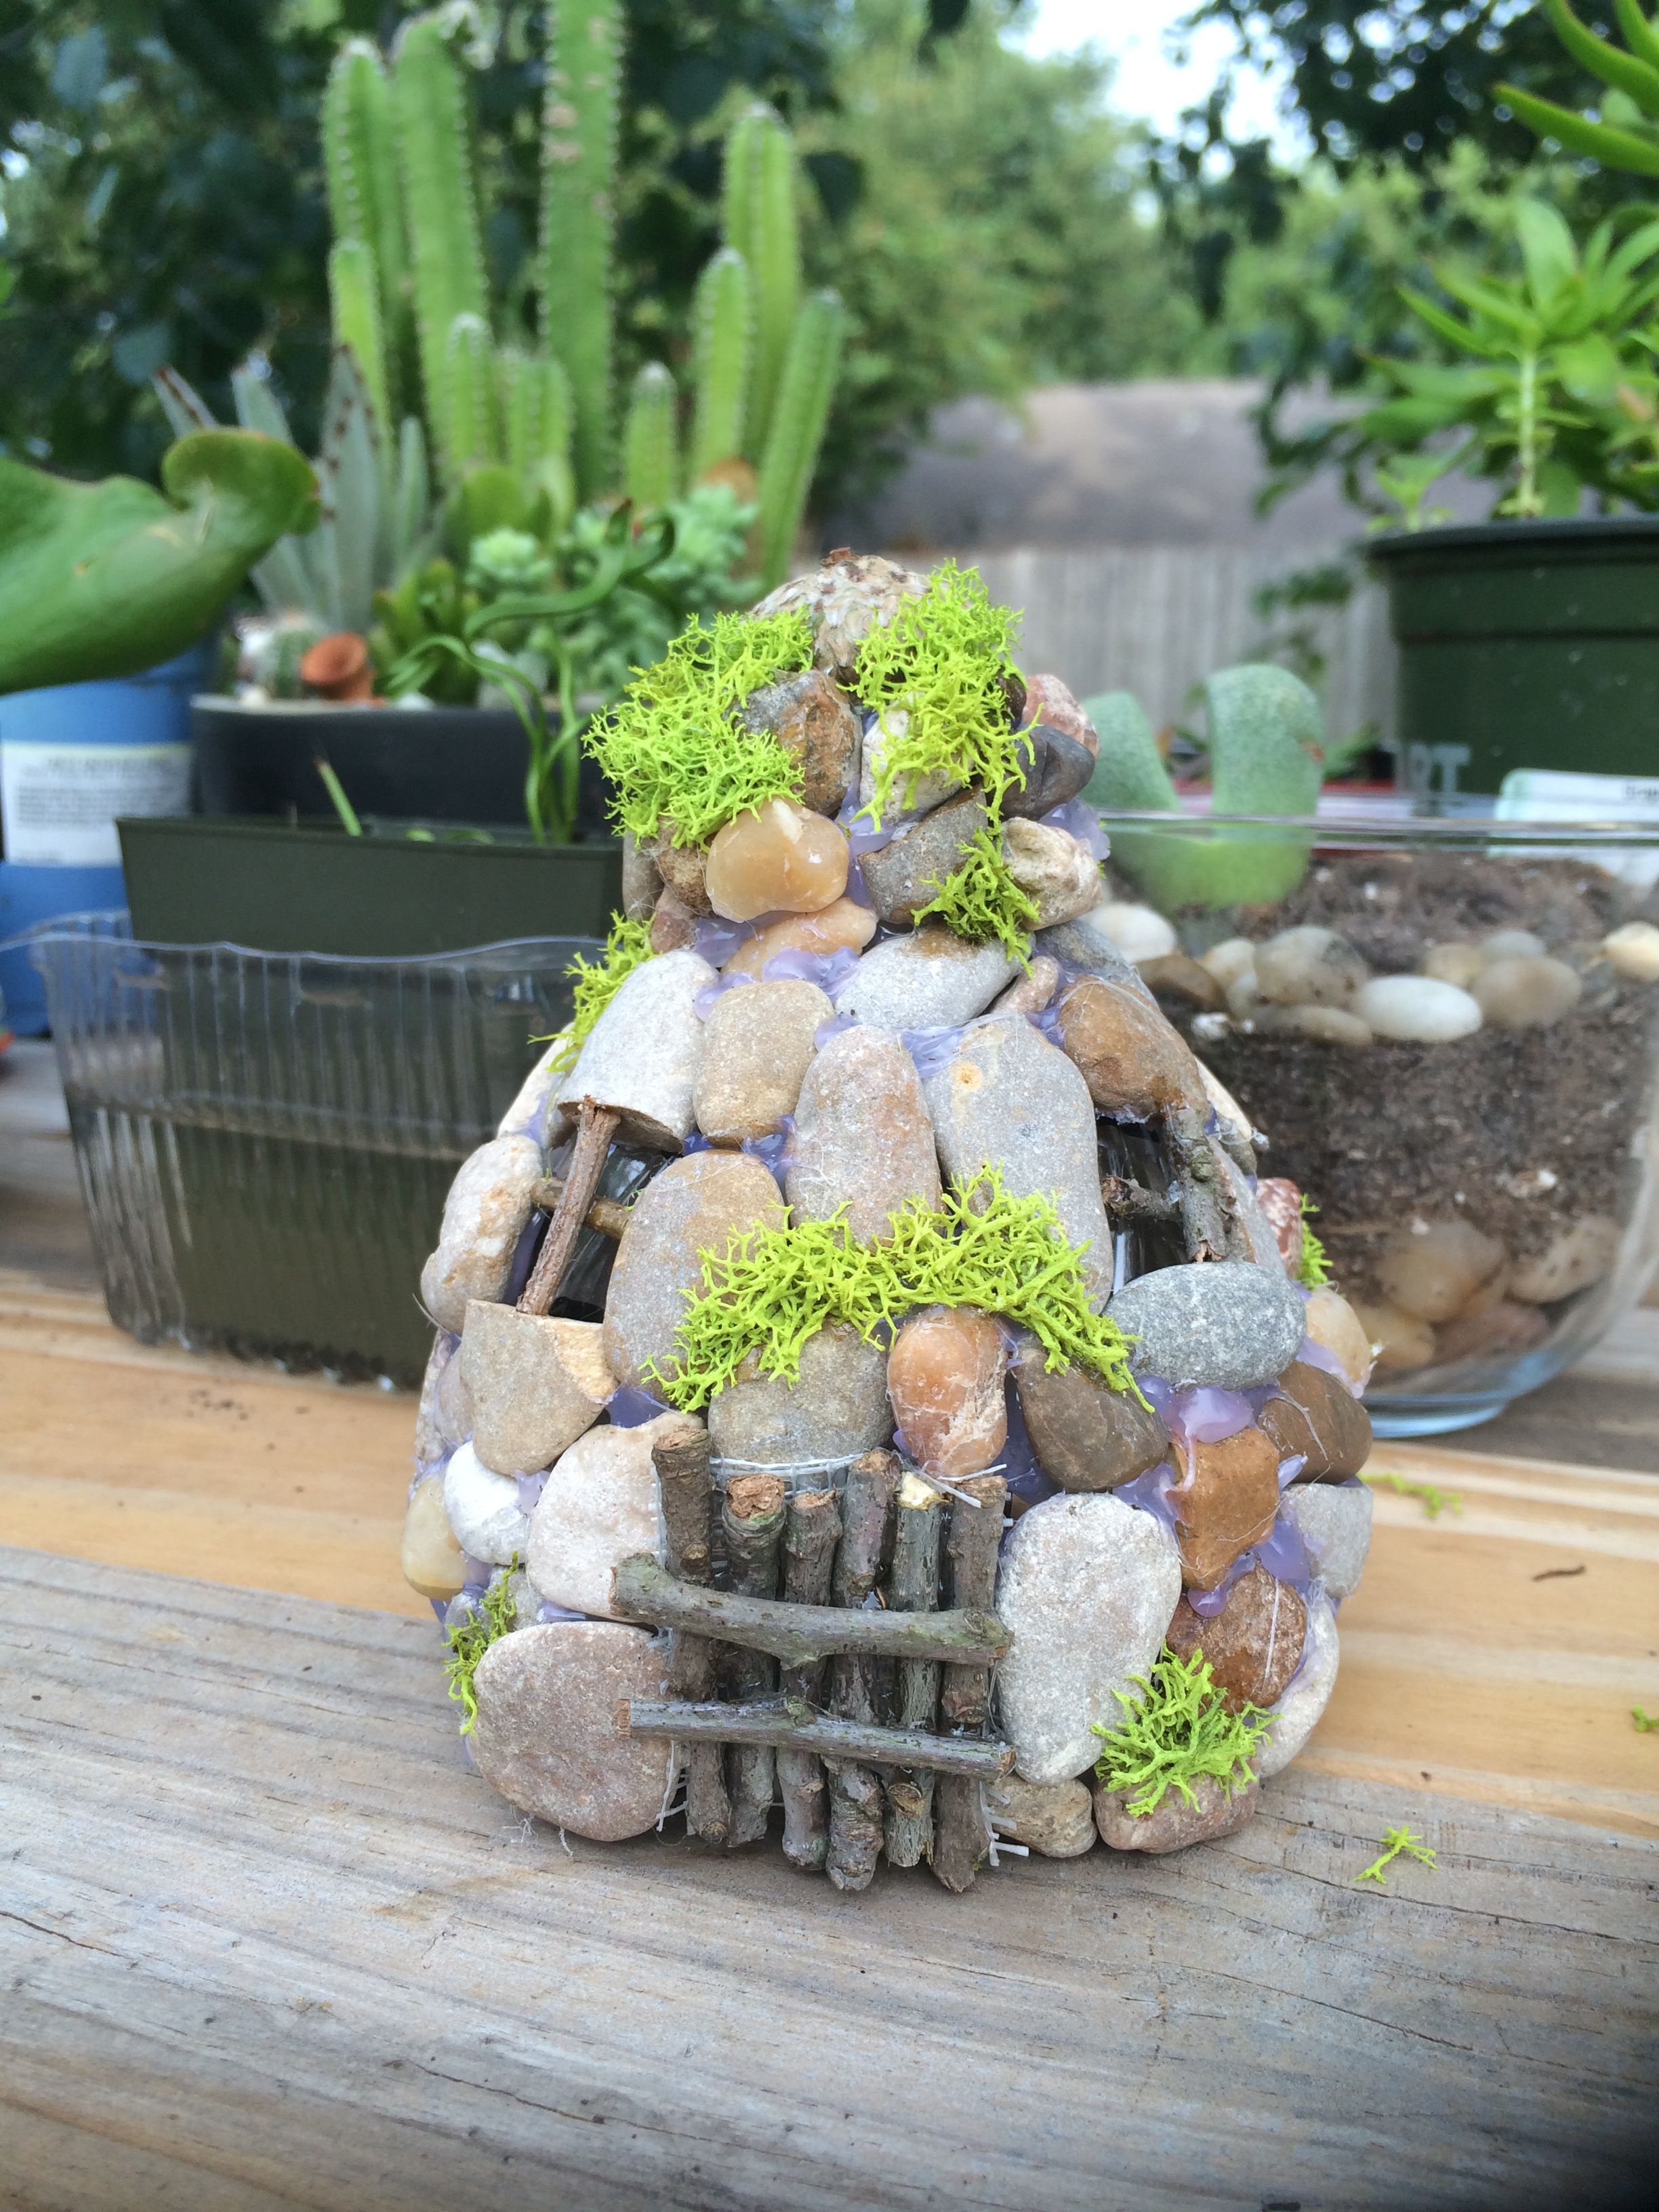 Diy Plastic Bottle Stone Fairy House - Year of Clean Water